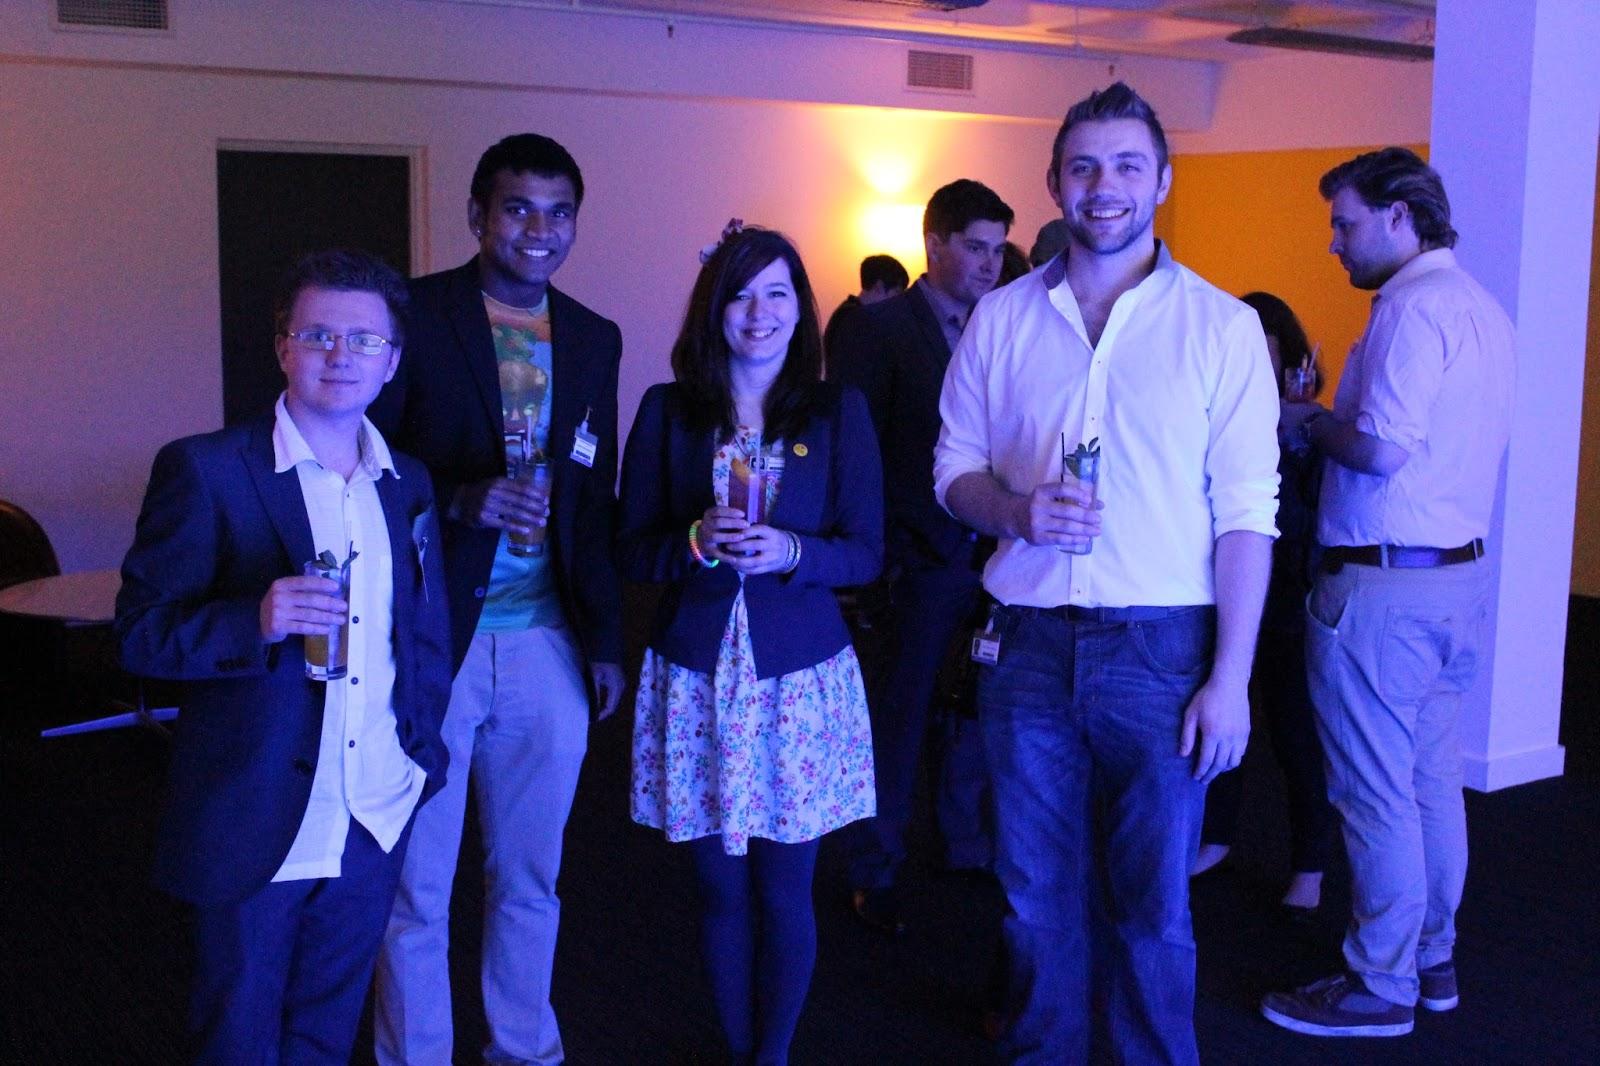 Award winning graduates Aidan Codd, Bharathi Anthonysamy, Molly Bolder and Max Rogers in the New Designers VIP Cocktail Lounge, July 2013